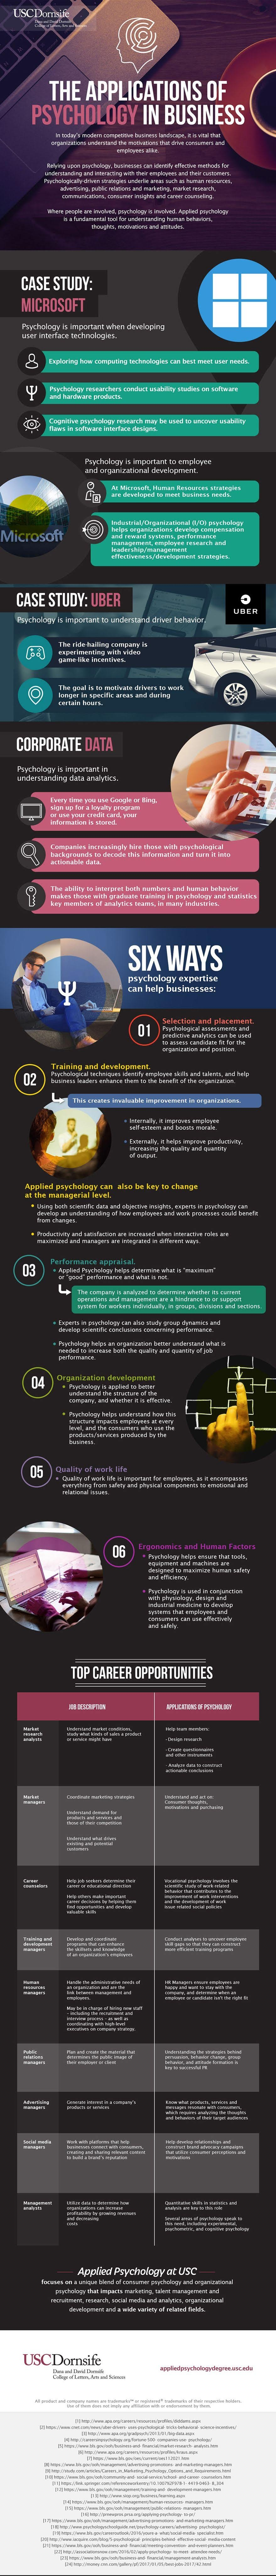 The Application of Psychology in Business #Infographic